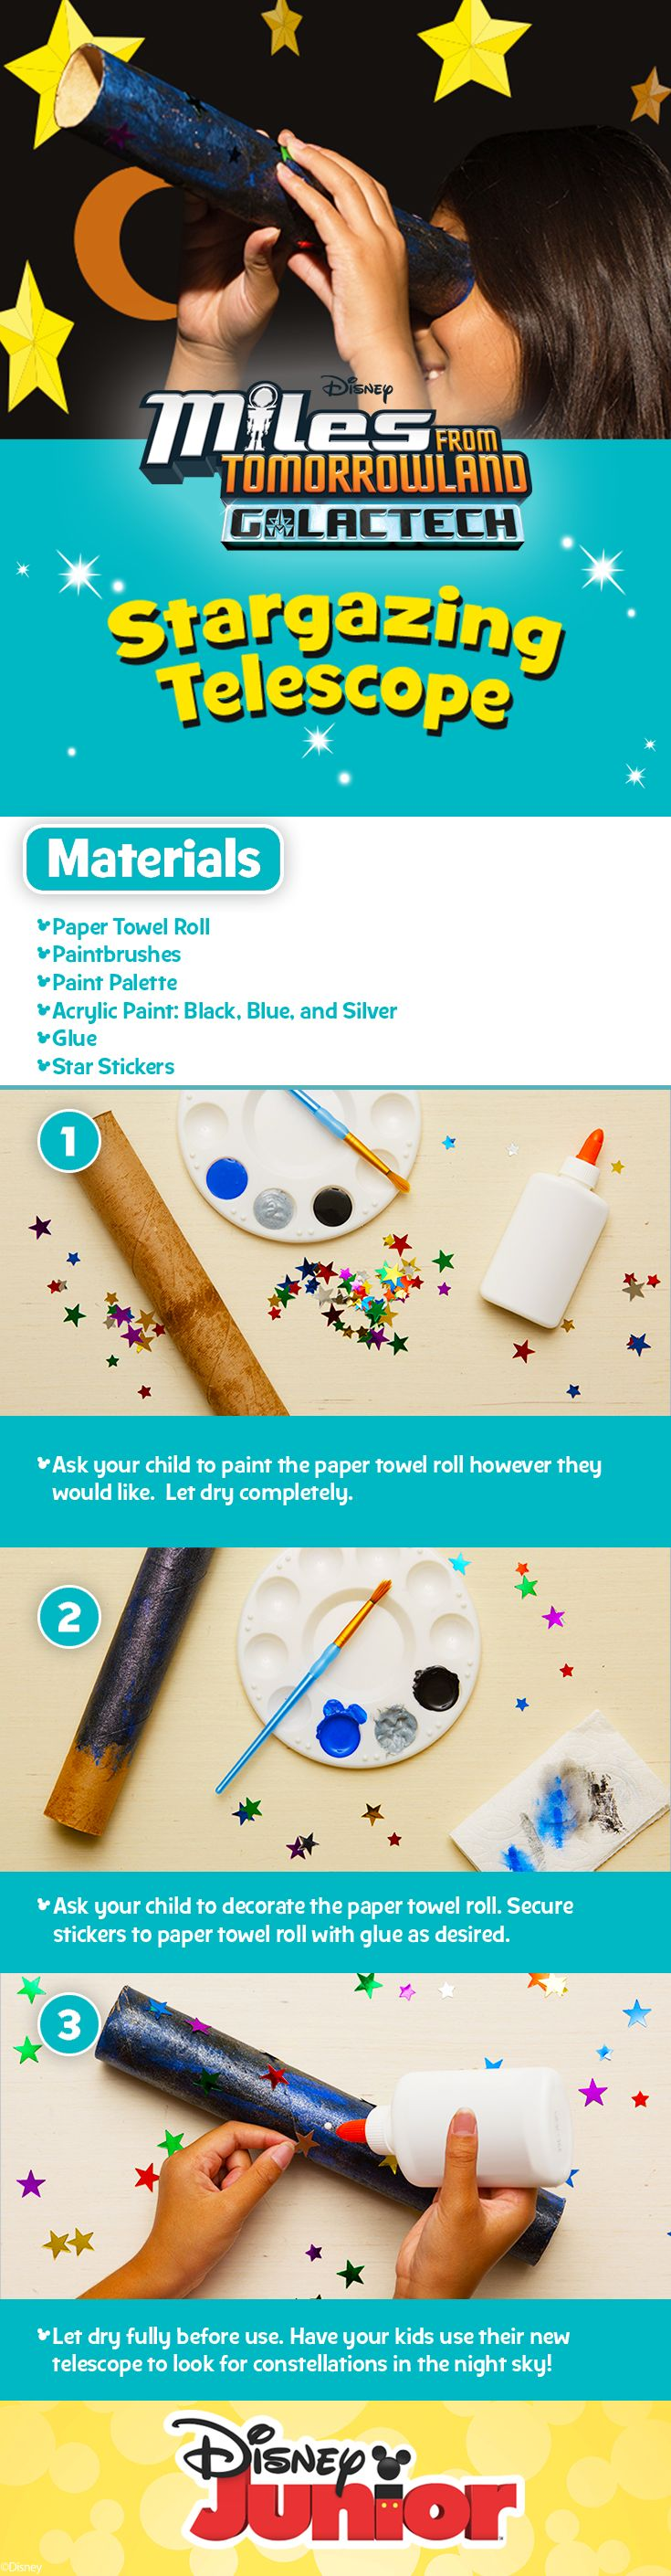 Miles From Tomorrowland Galactech Stargazing Telescope | Have your kids paint a paper towel roll with their favorite colors to create a turbo-charged telescope!